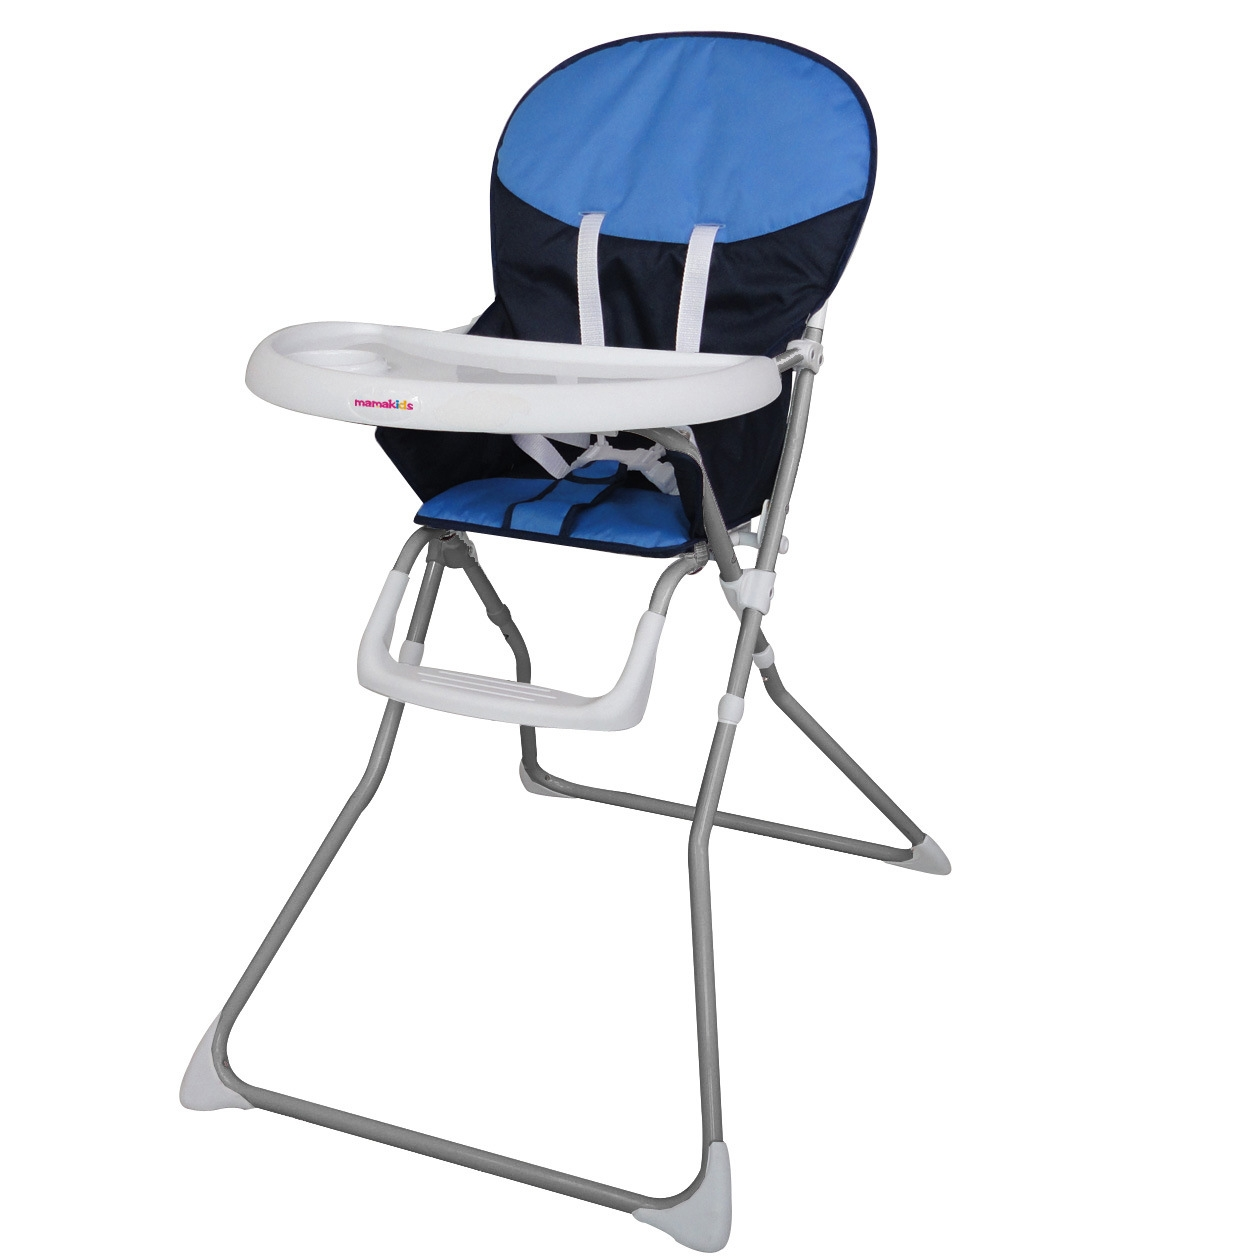 baby table and chairs sport folding mamakids pullbacks child carry dining chair high